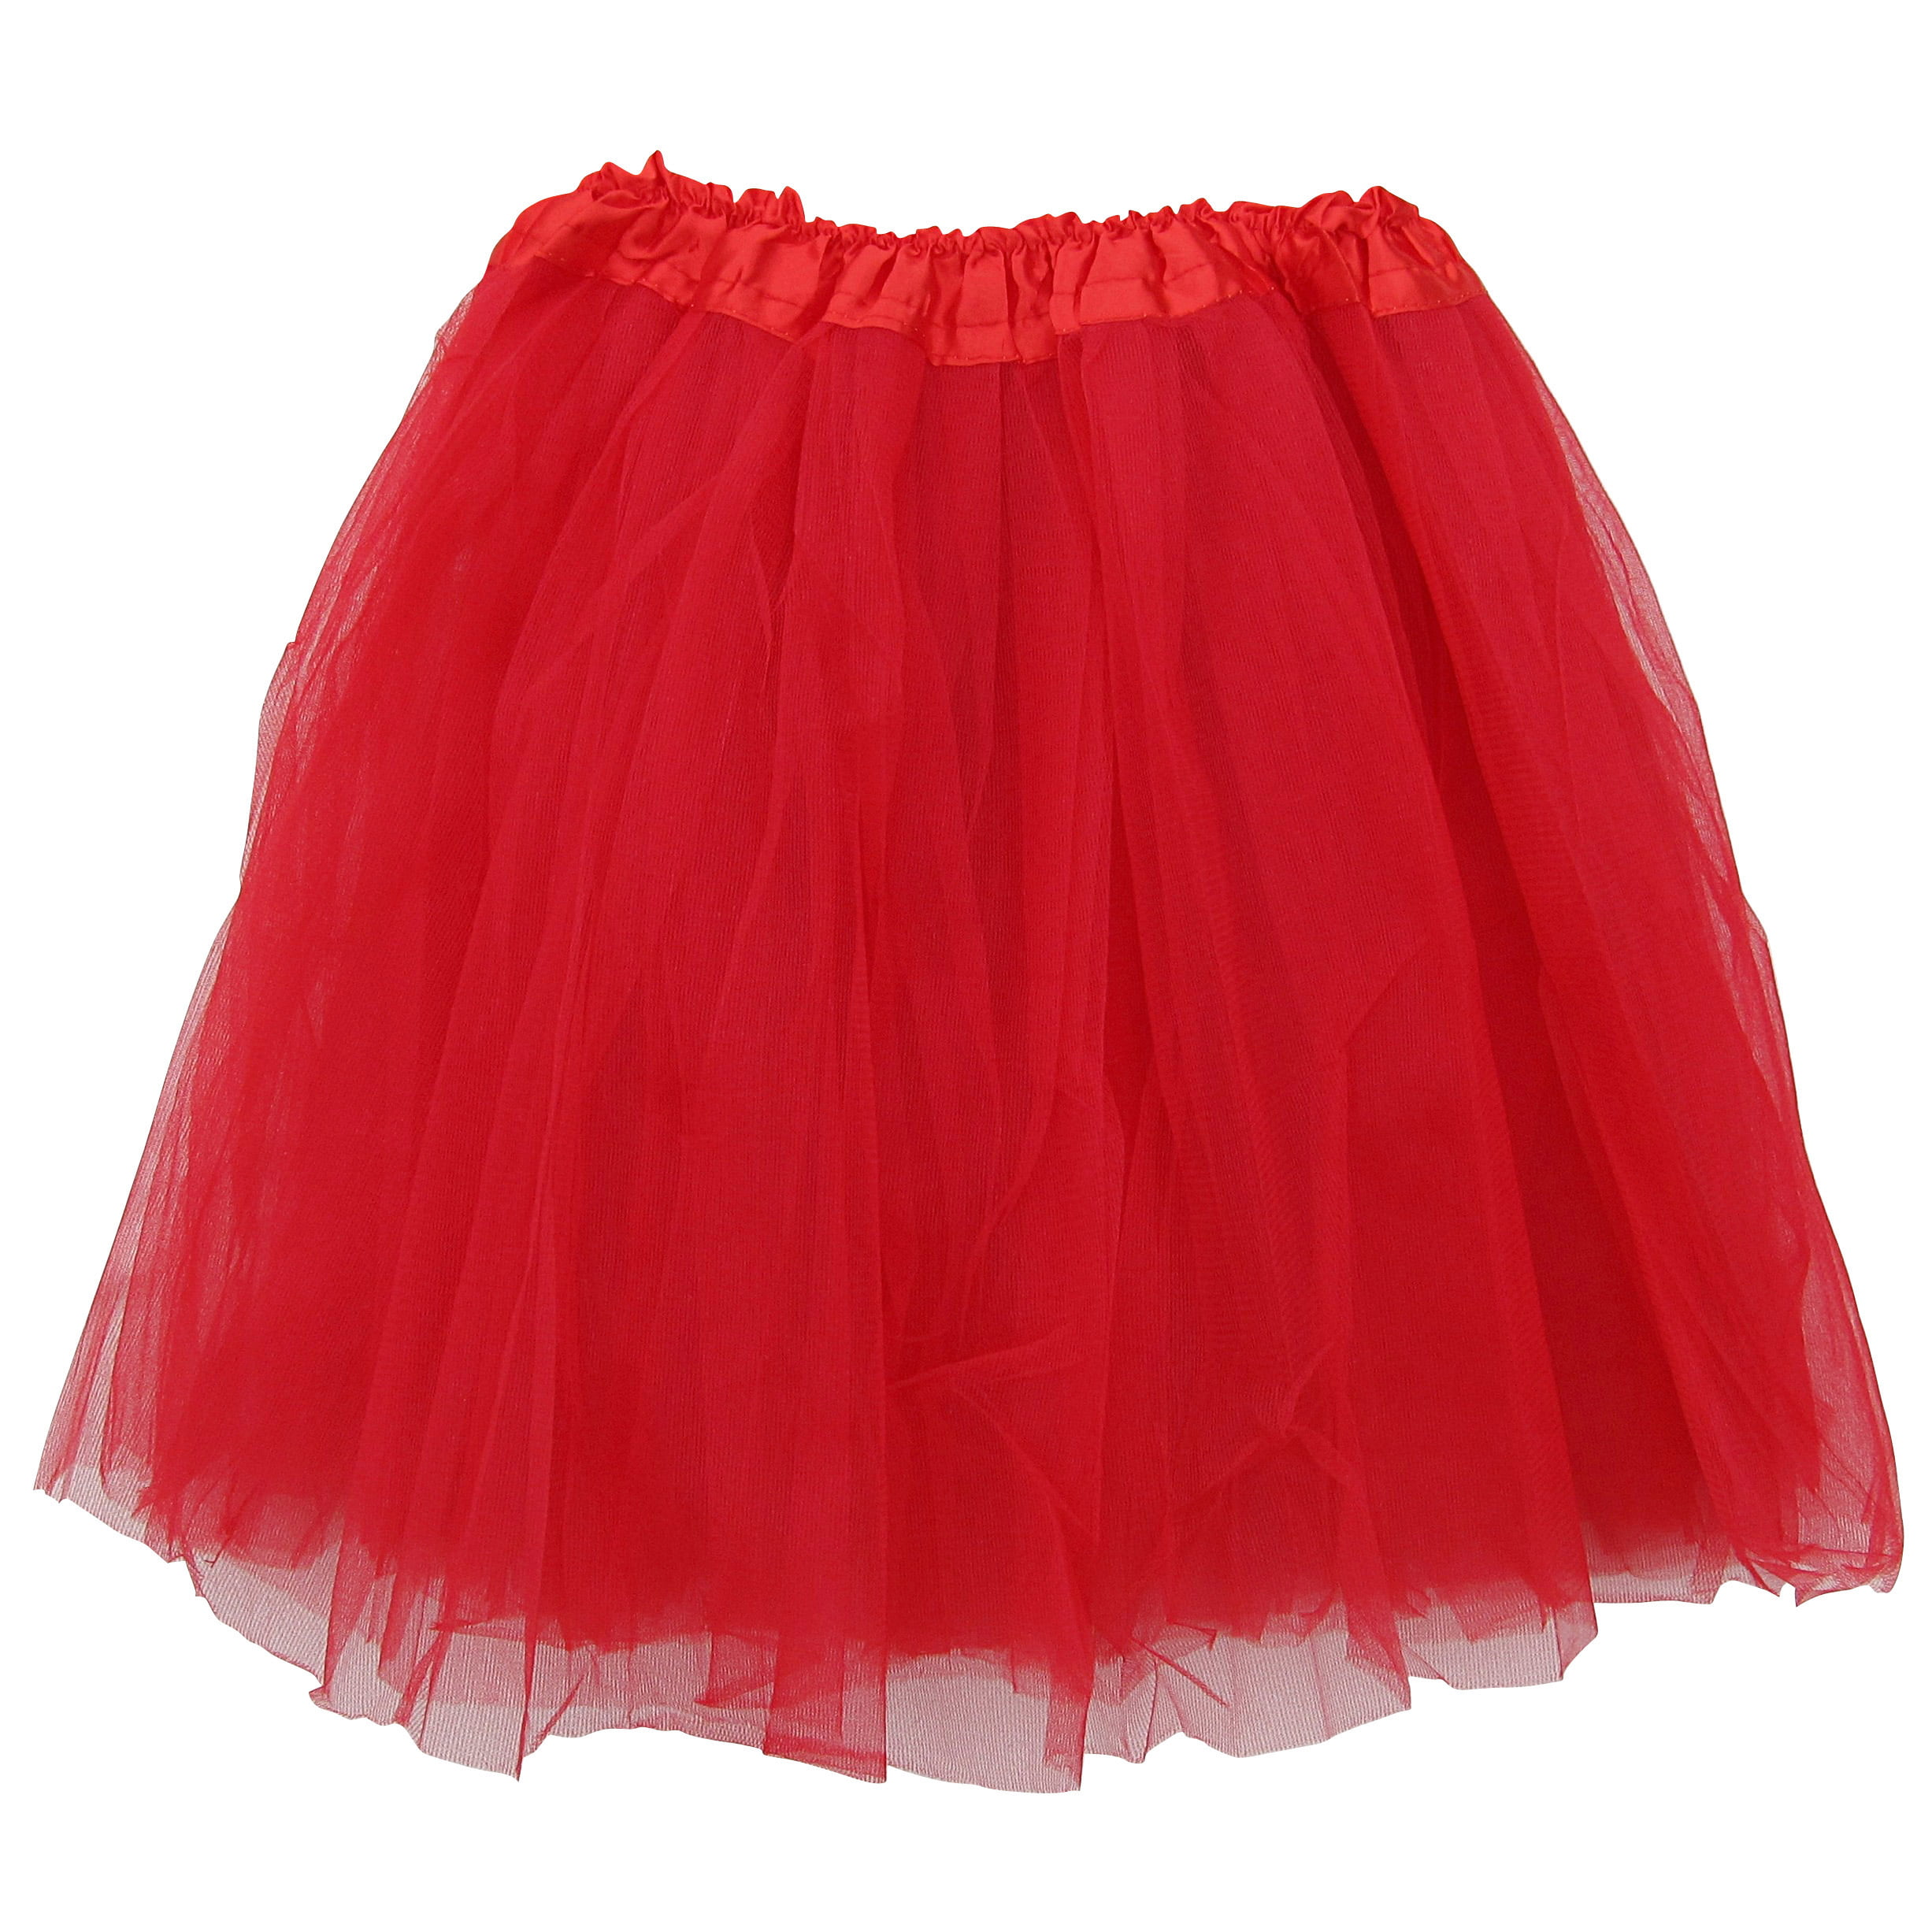 f50cd8fa5d Plus Size Red Adult Size 3-Layer Tulle Tutu Skirt - Princess Halloween  Costume, Ballet Dress, Party Outfit, Warrior Dash/ 5K Run - Walmart.com